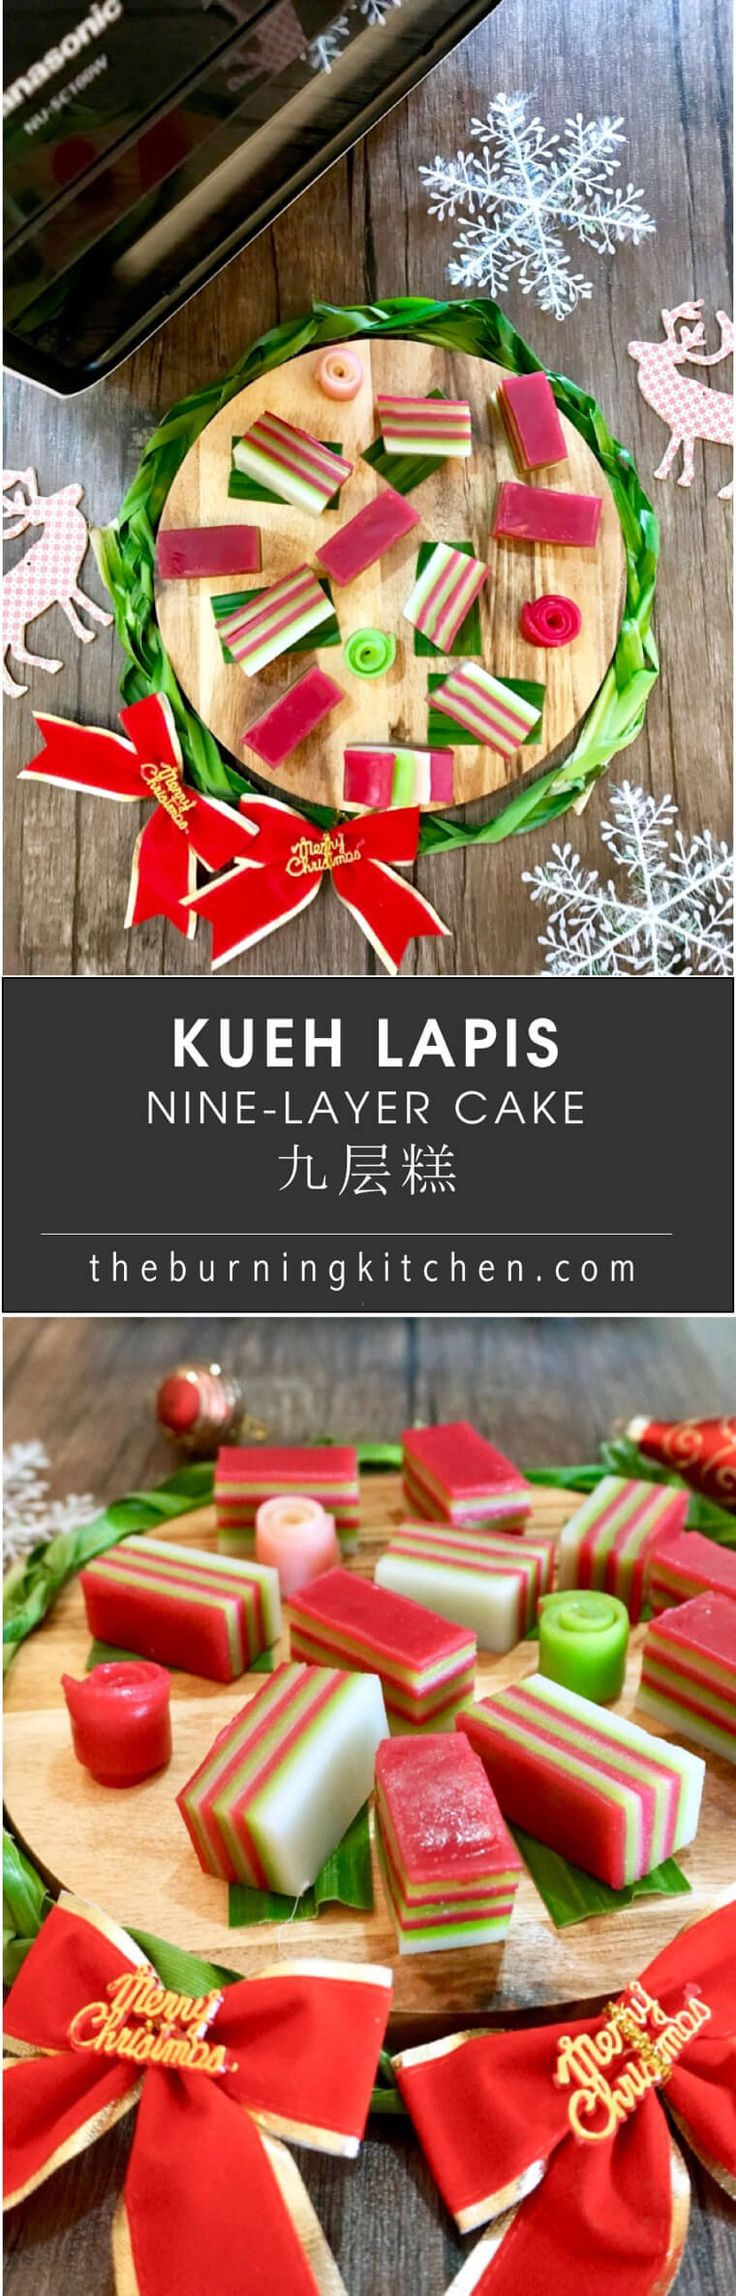 Kueh Lapis (Nine-Layer Cake / Jiu Ceng Gao / 九层糕): This delicious kueh never fails to put a smile on my face. After all, who can forget having these as a child, peeling off the layers one by one and slowly savouring each soft, springy layer of coconut-y goodness!